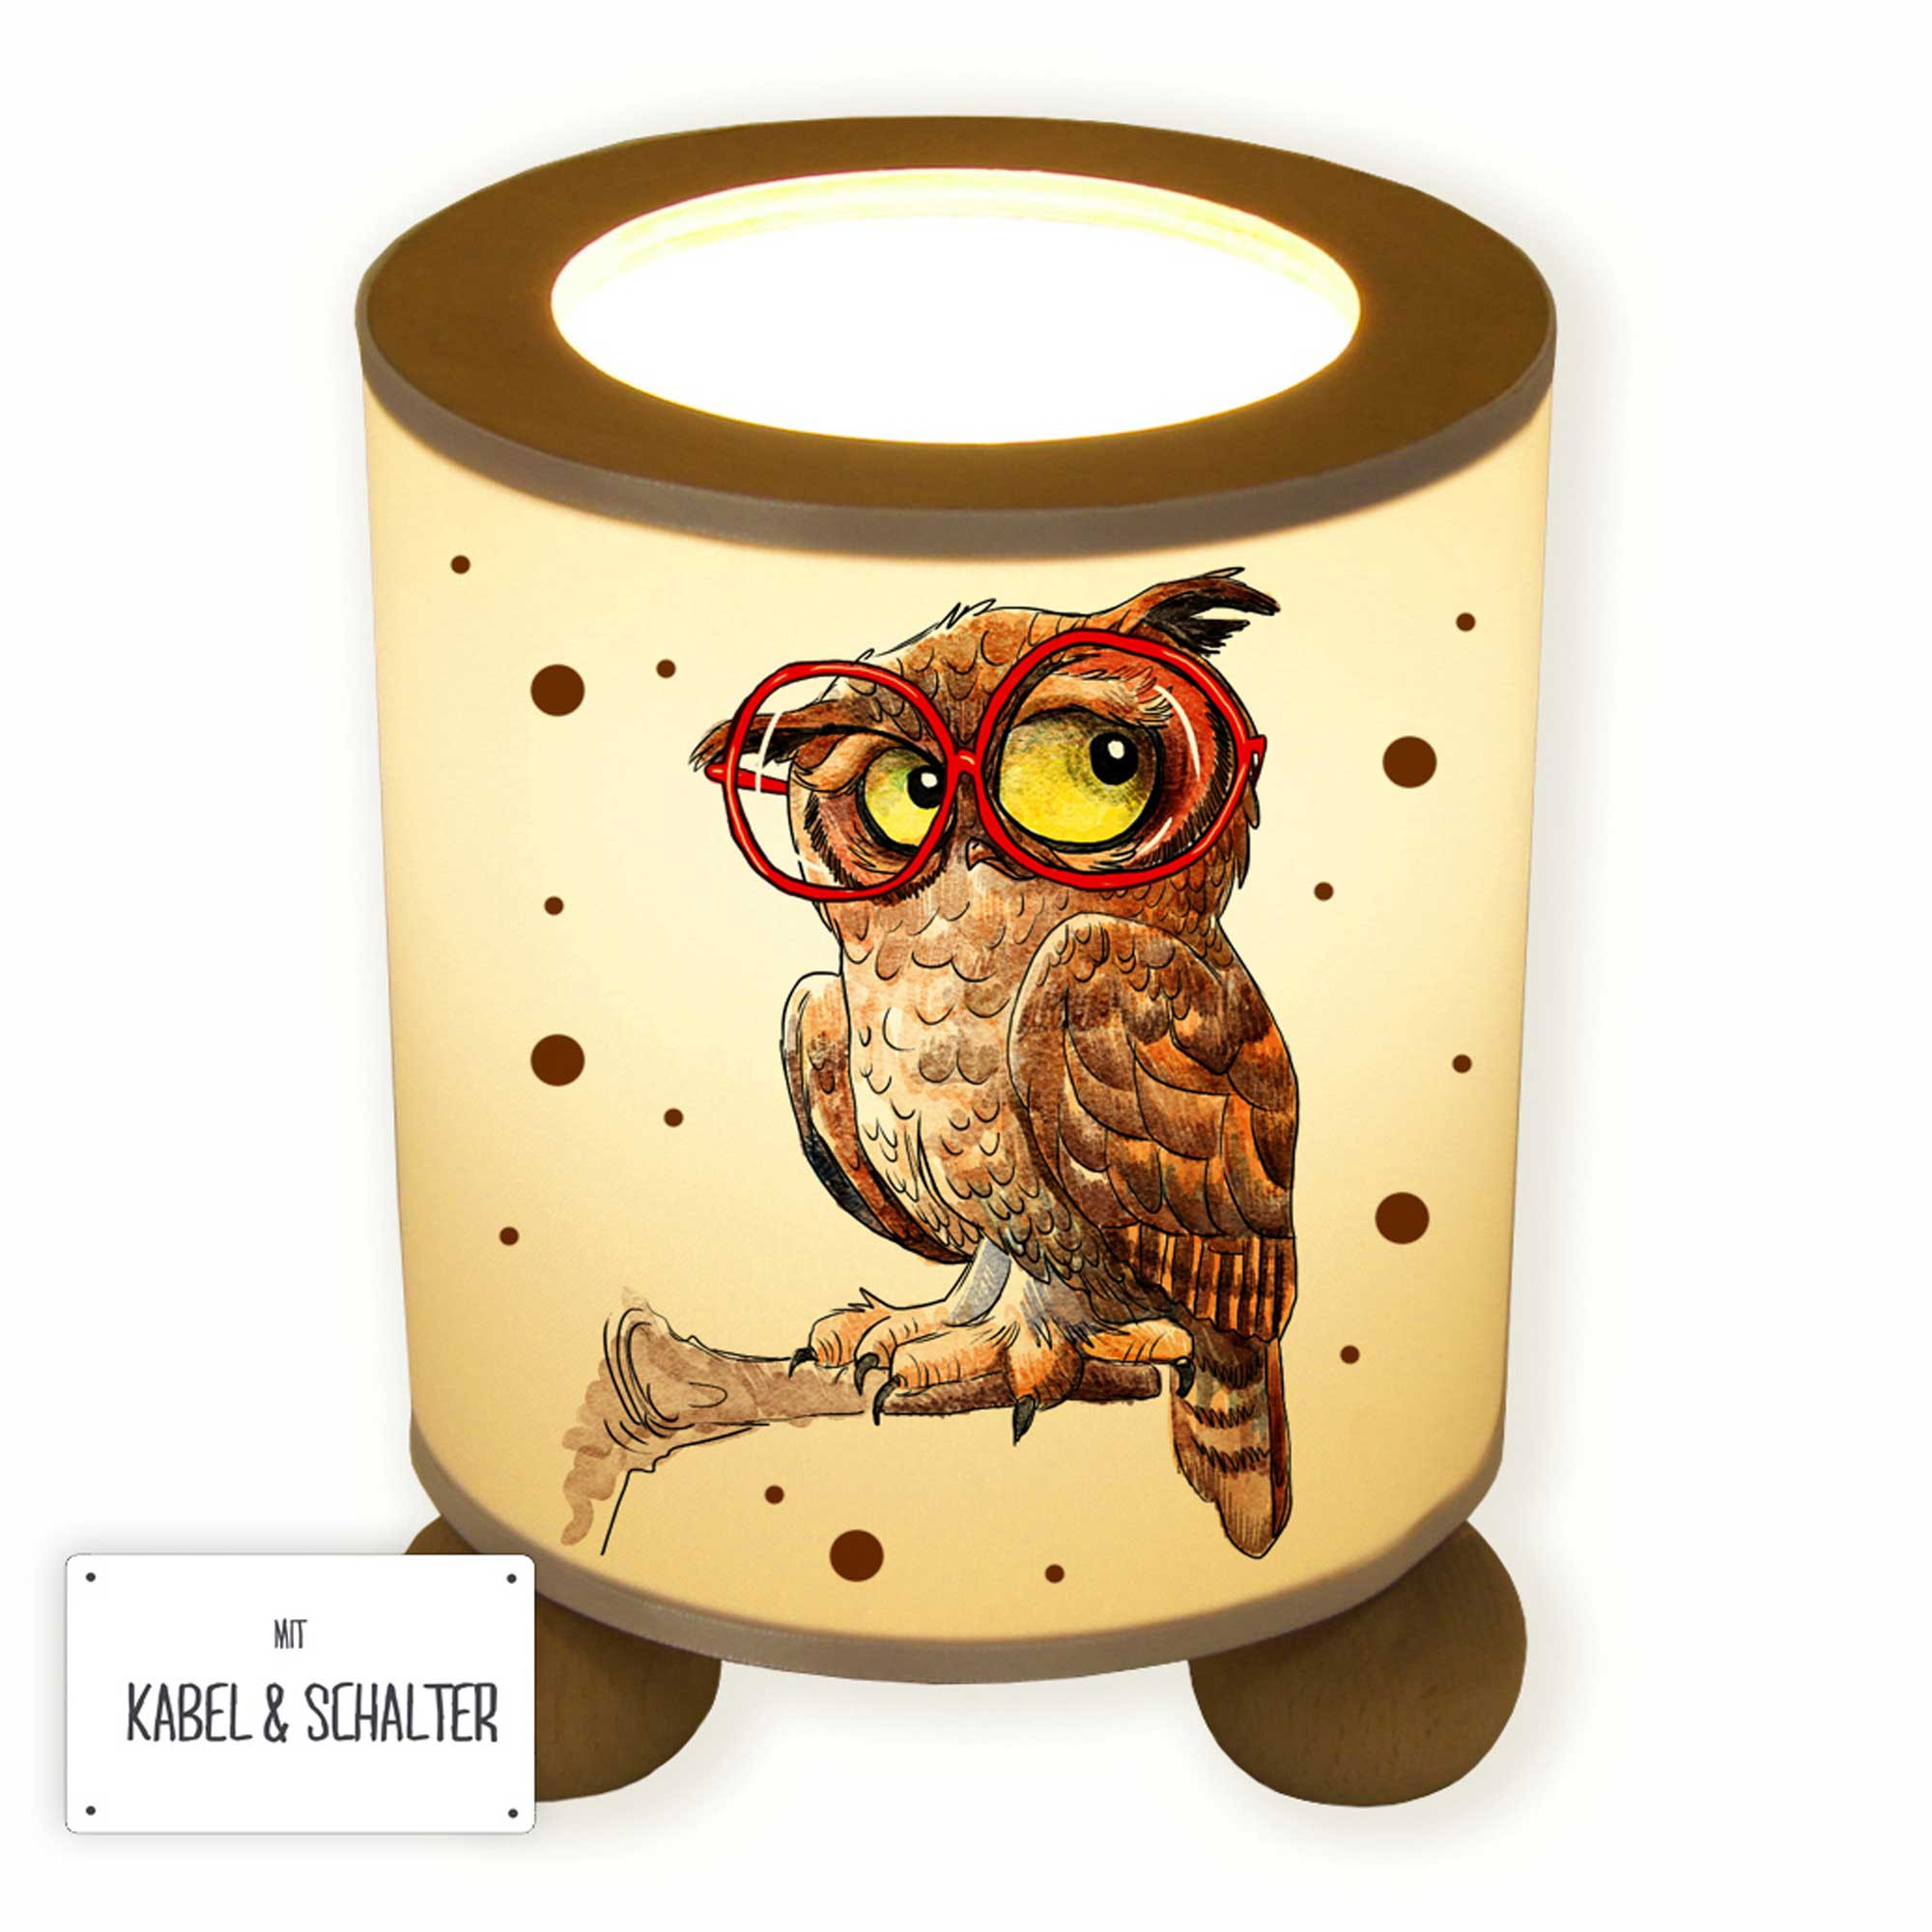 Lampe Ast Table Lamp Owl On Branch With Glasses And Dots Tl066 Wall Decals